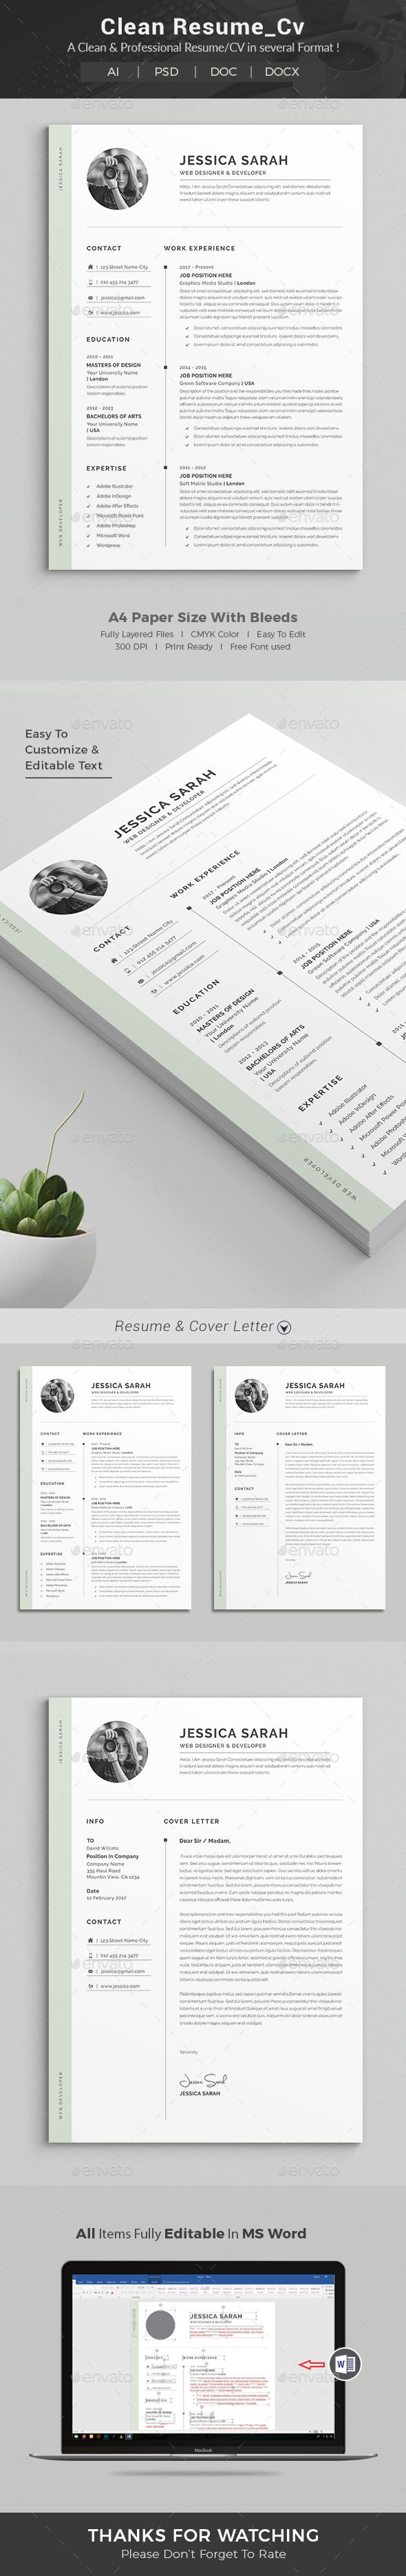 How To Make A Resume On Word 2010 Resume  Template Creative Resume Templates And Design Resume